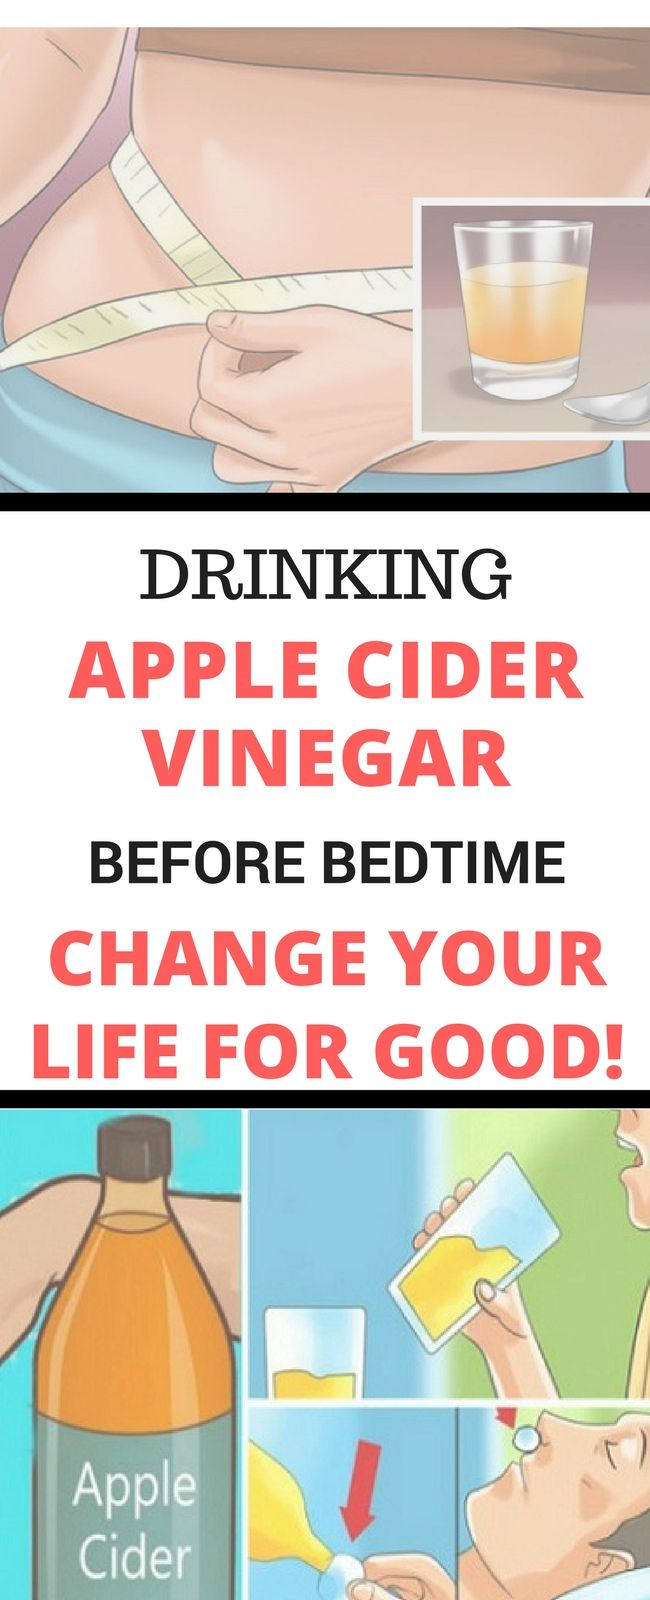 Drinking Apple Cider Vinegar Before Bedtime Will Change Your Life For Good.!! Here is.. Need to know! Amazing !!!